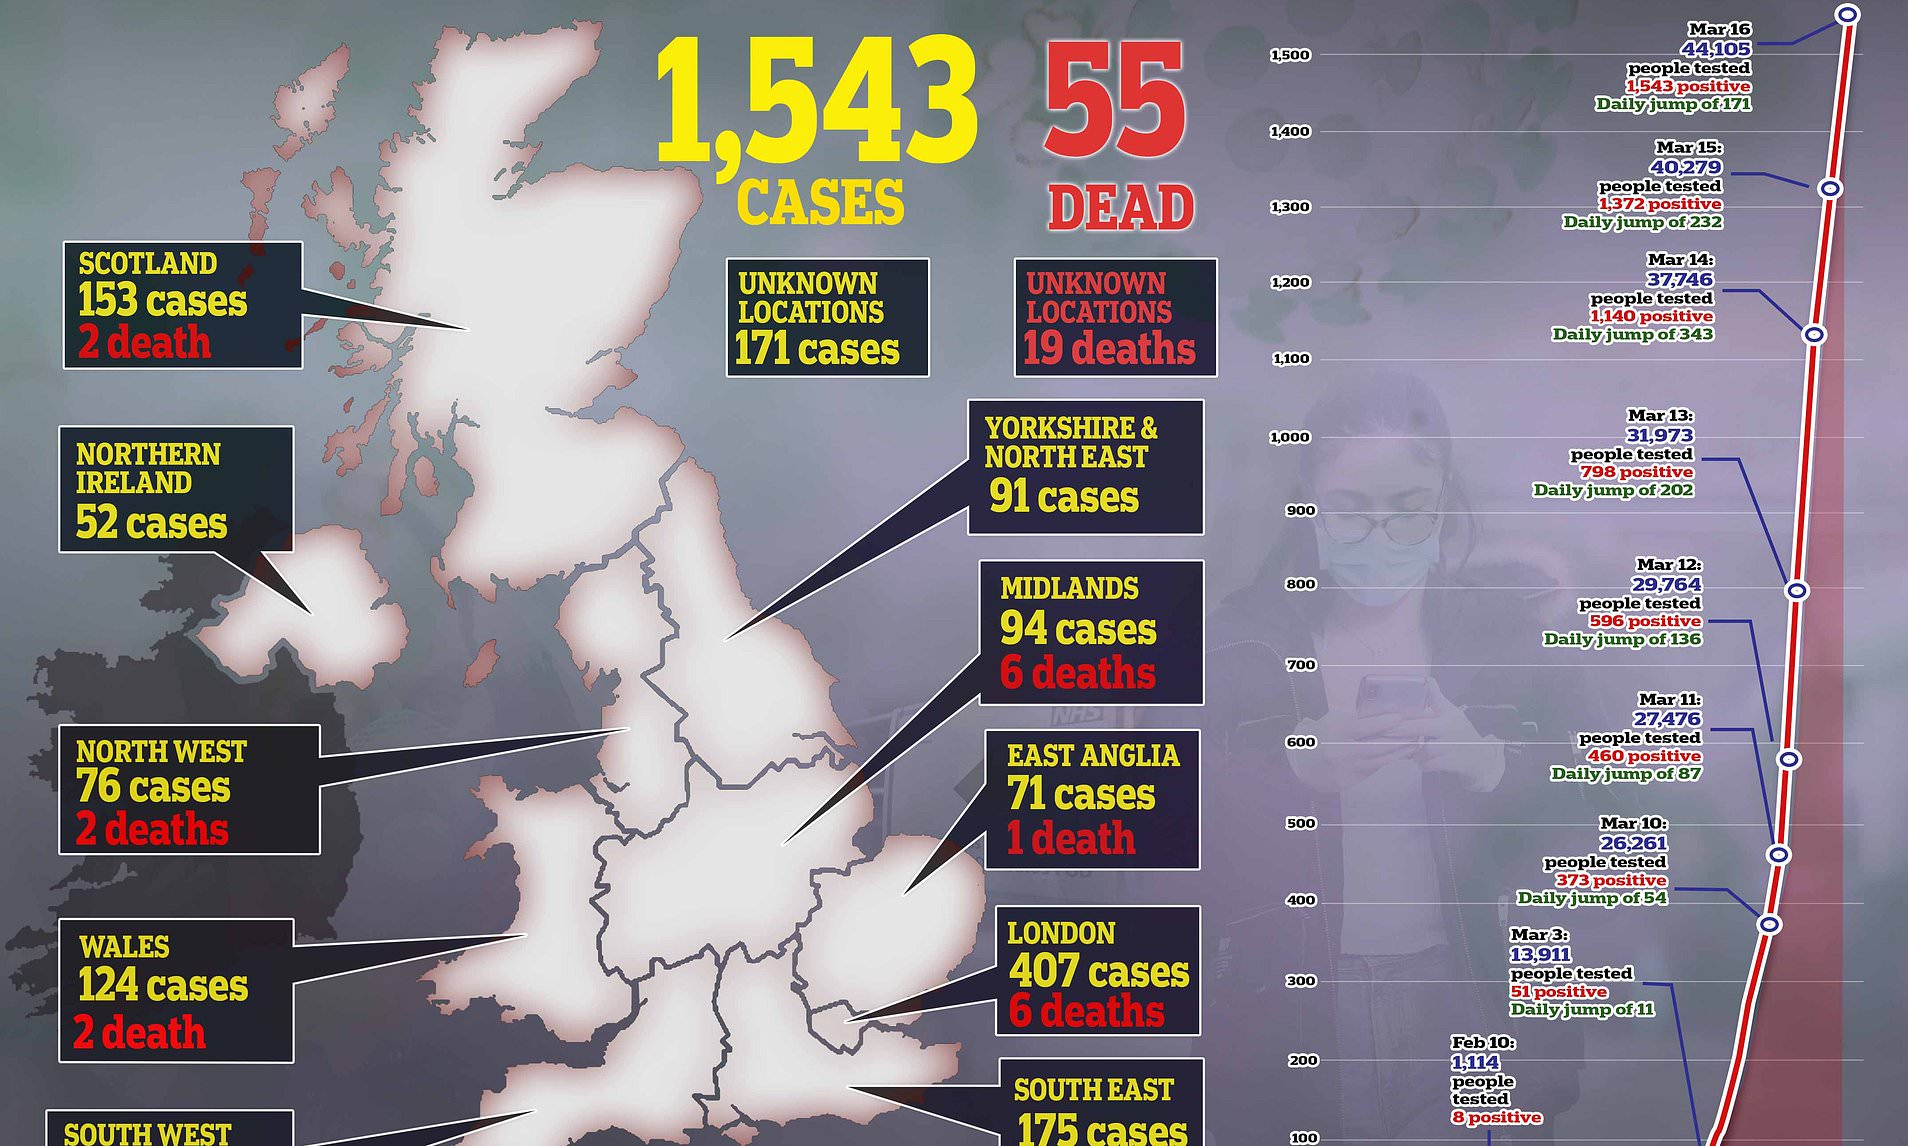 Coronavirus UK: Death toll jumps to 55 from 35 in a DAY | Daily ...